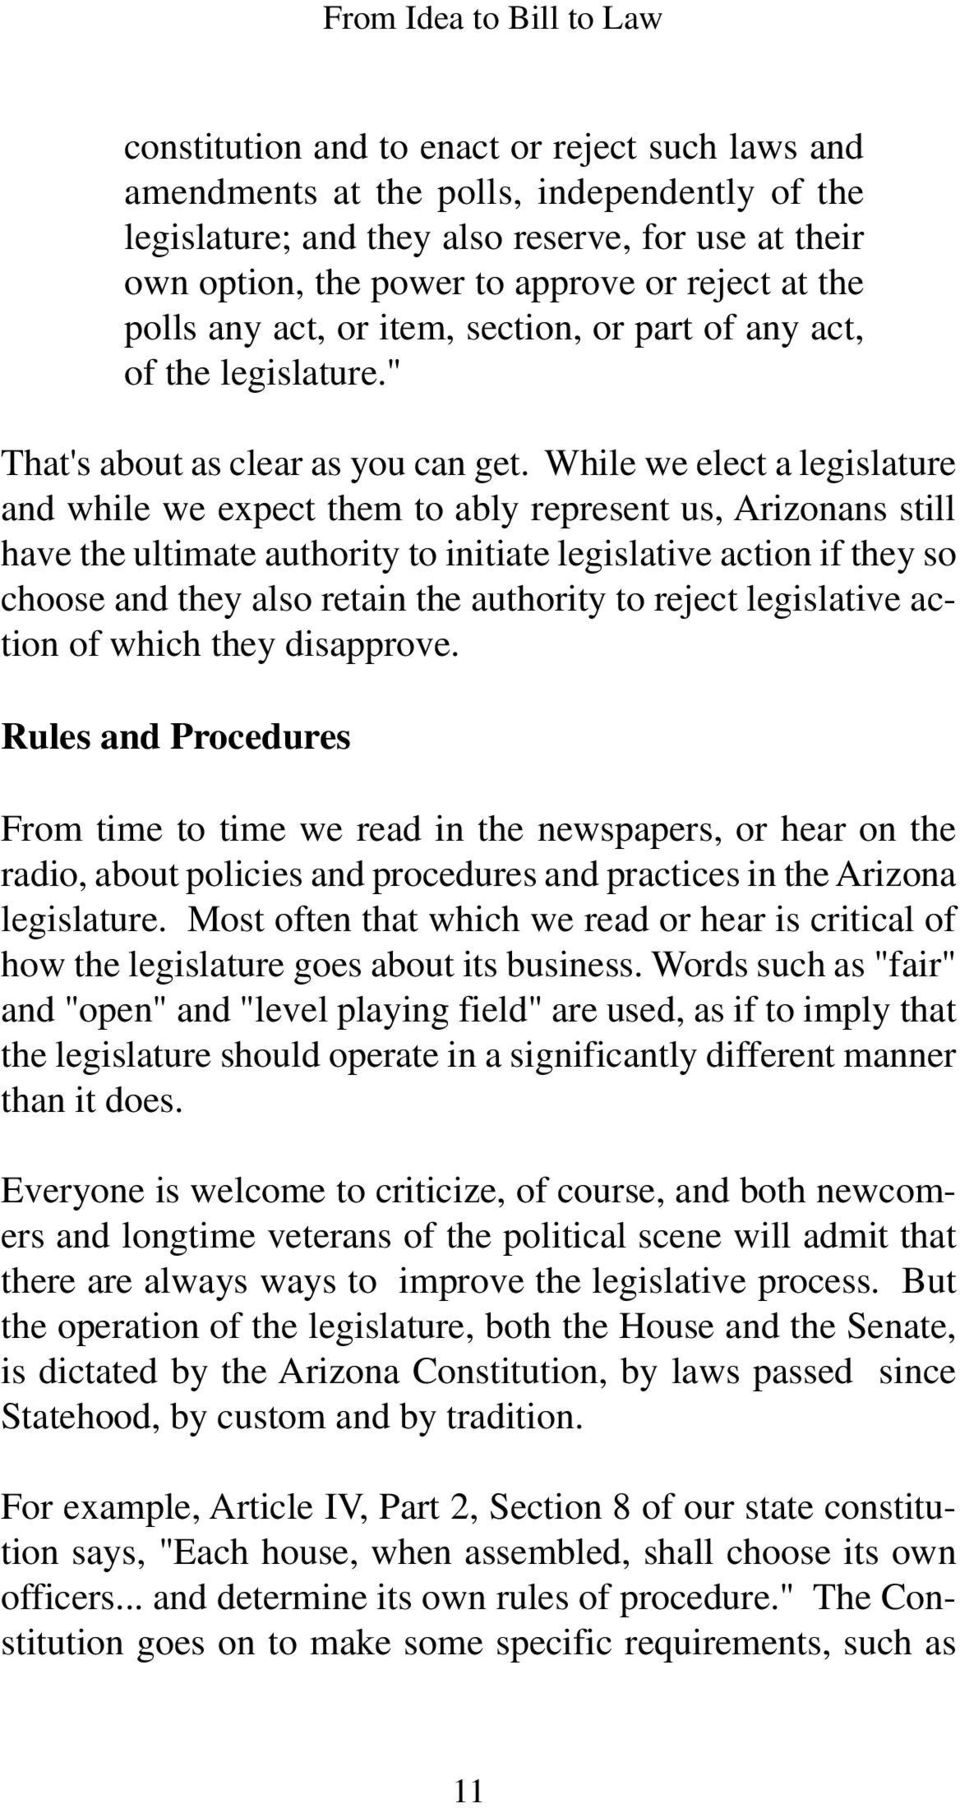 While we elect a legislature and while we expect them to ably represent us, Arizonans still have the ultimate authority to initiate legislative action if they so choose and they also retain the